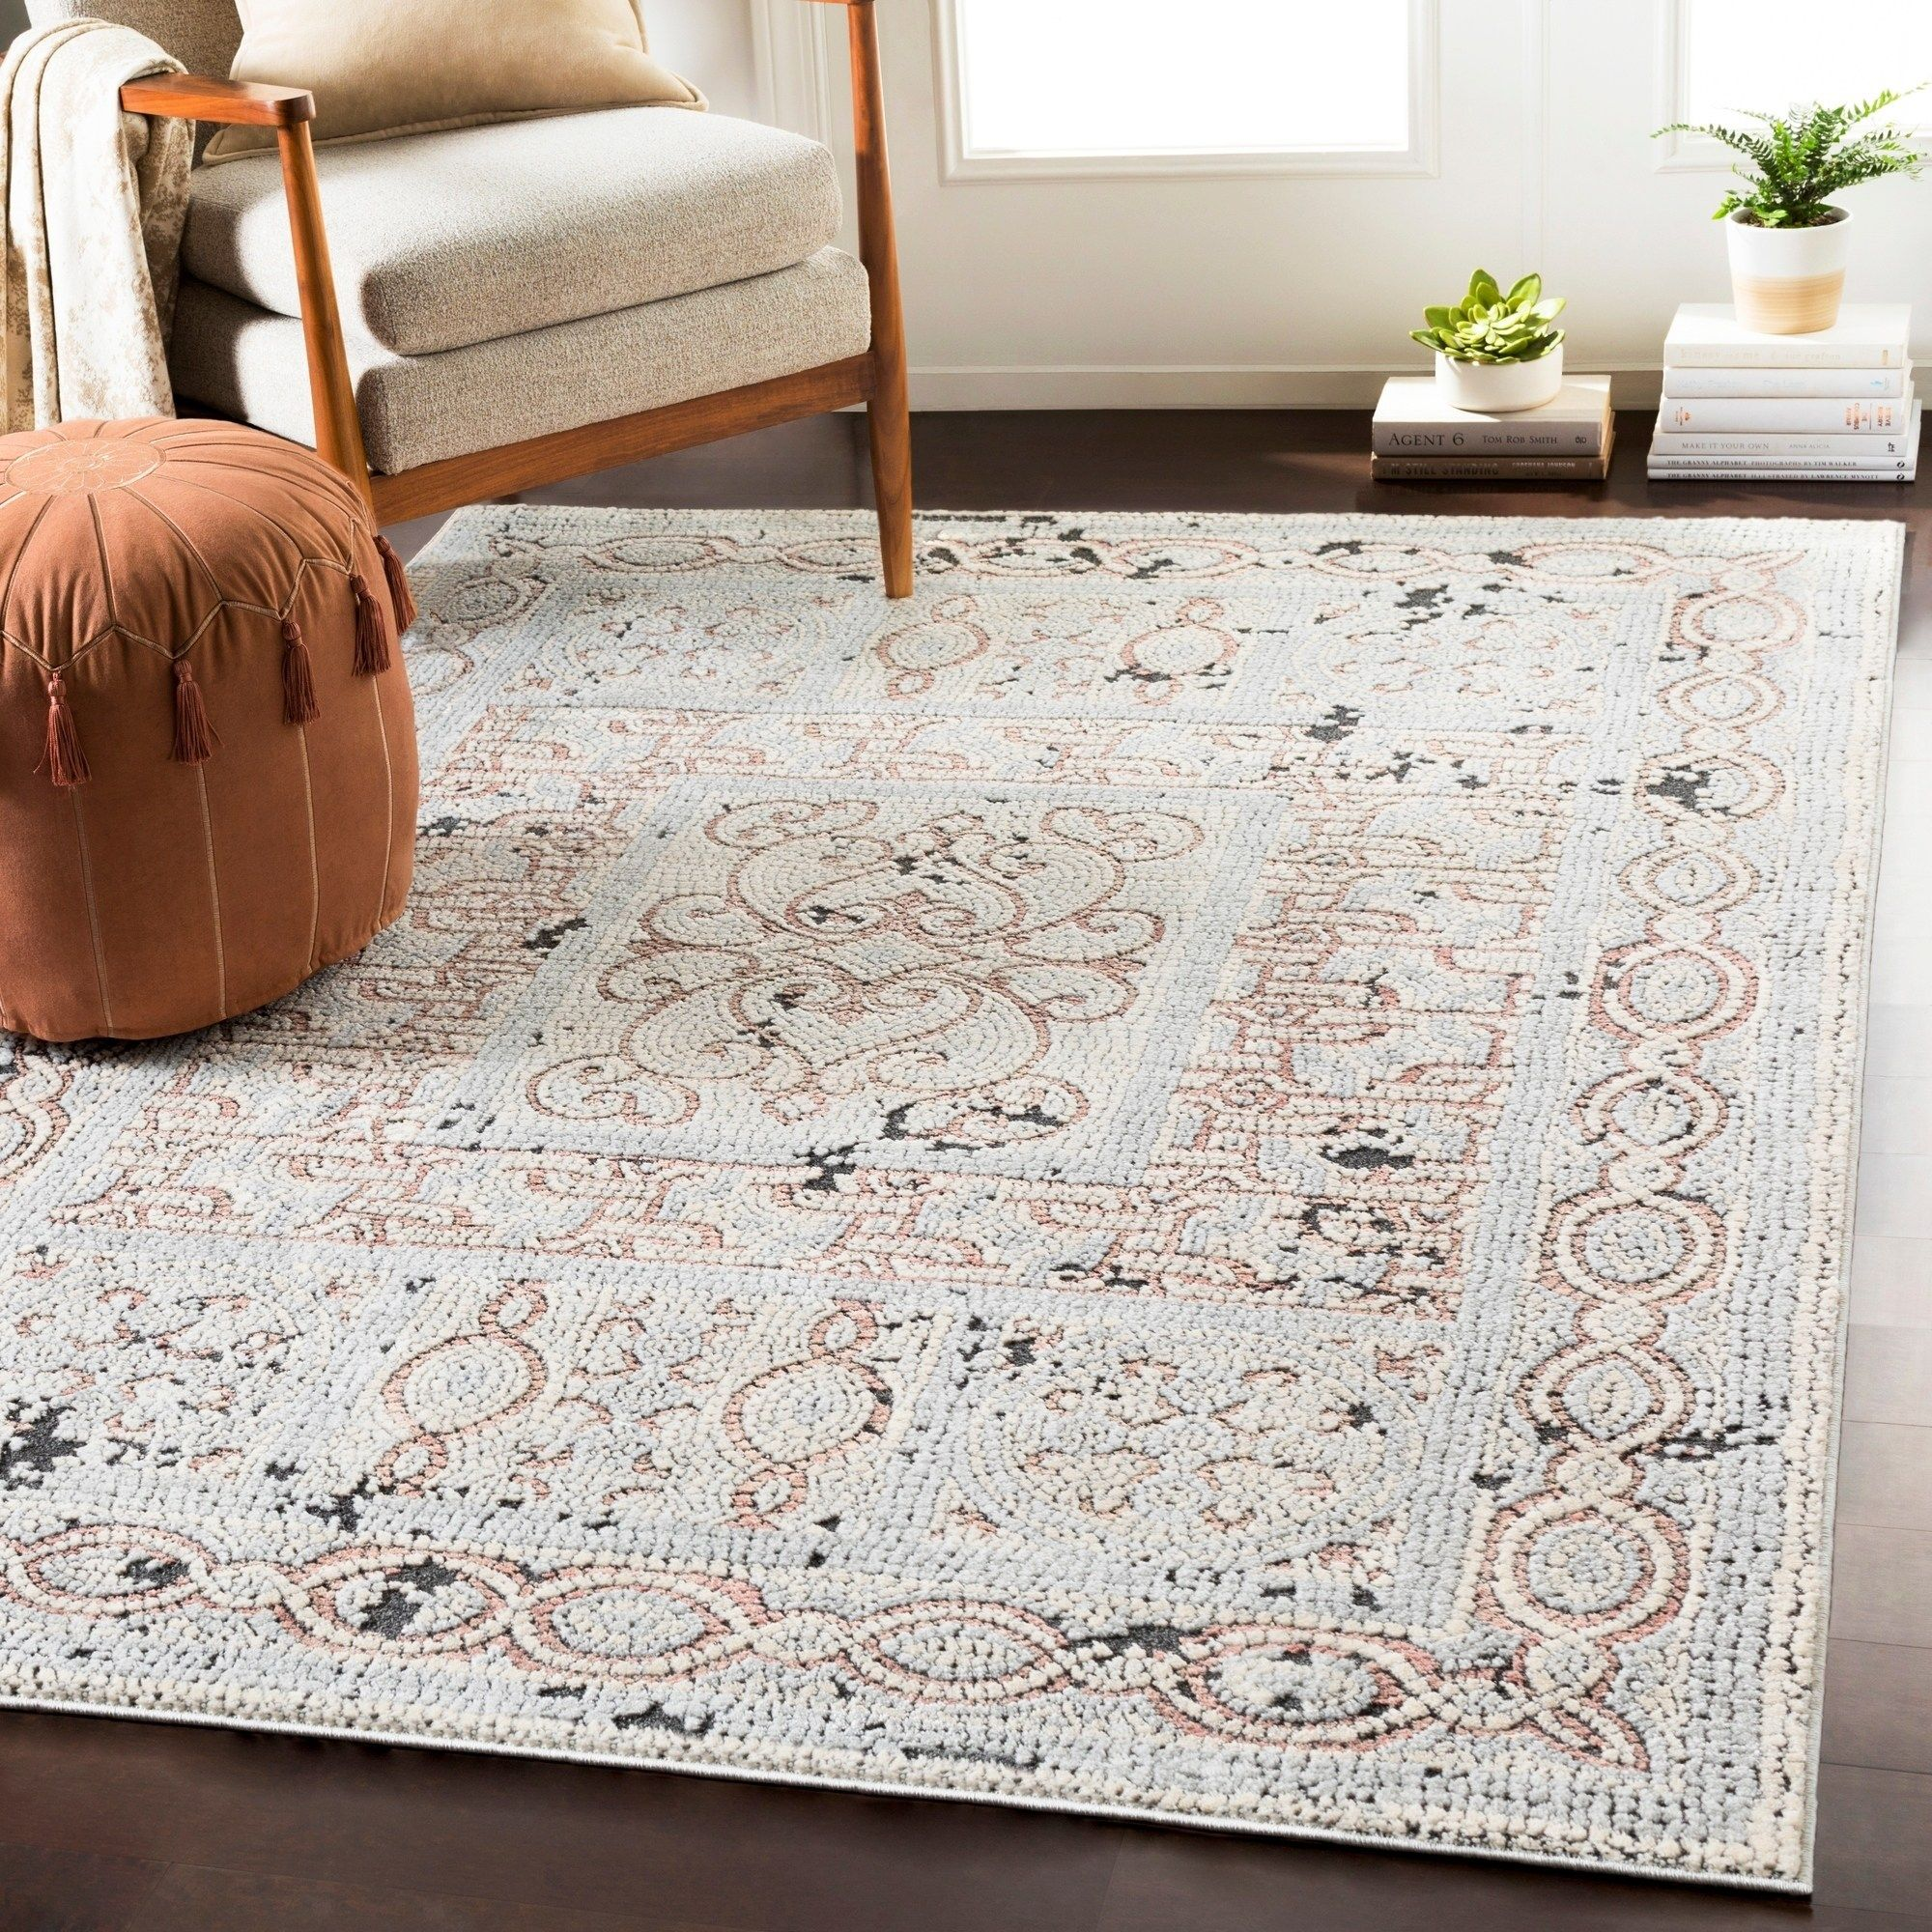 Lucca Beige Gray Distressed Mosaic Area Rug 6 7 X 9 6 6 7